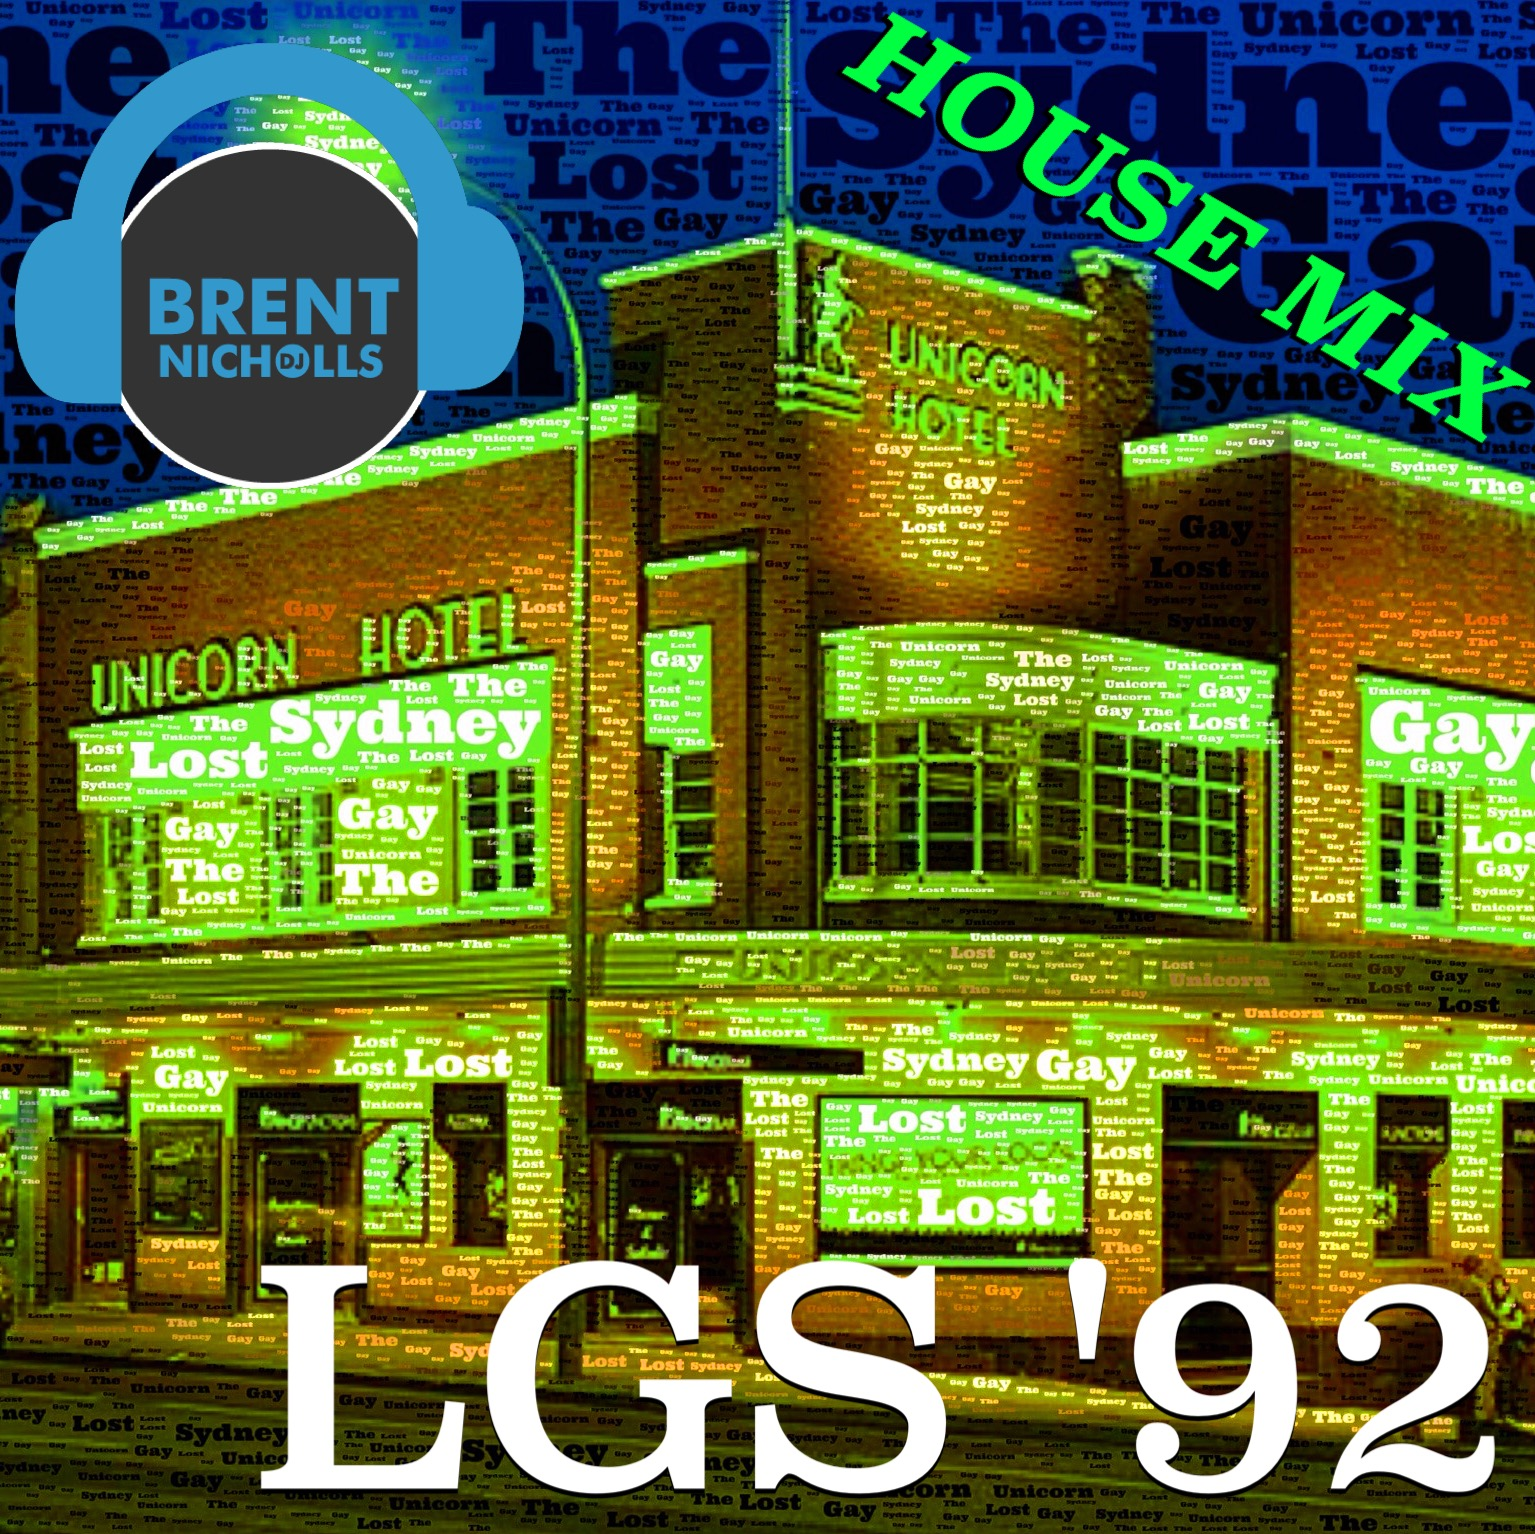 RETRO: LGS 1992 THE HOUSE MIX